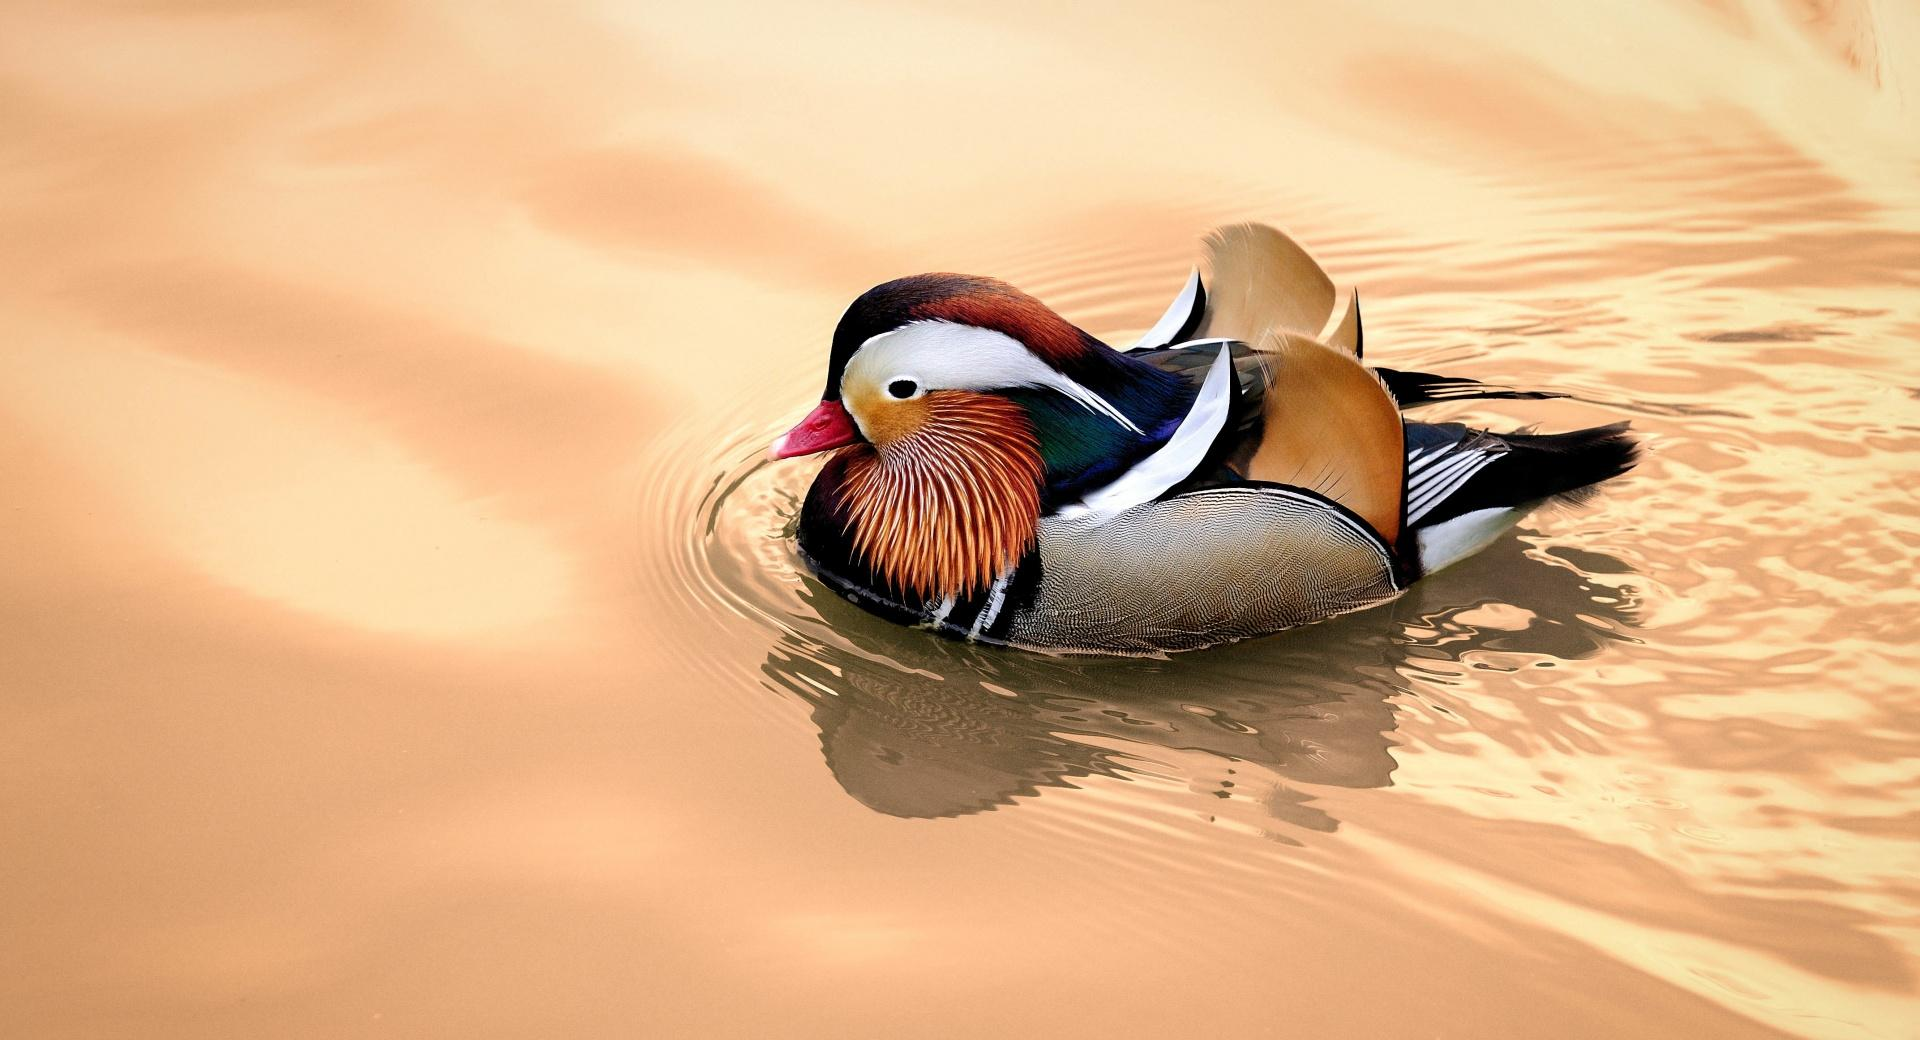 Mandarin Duck Male at 1152 x 864 size wallpapers HD quality